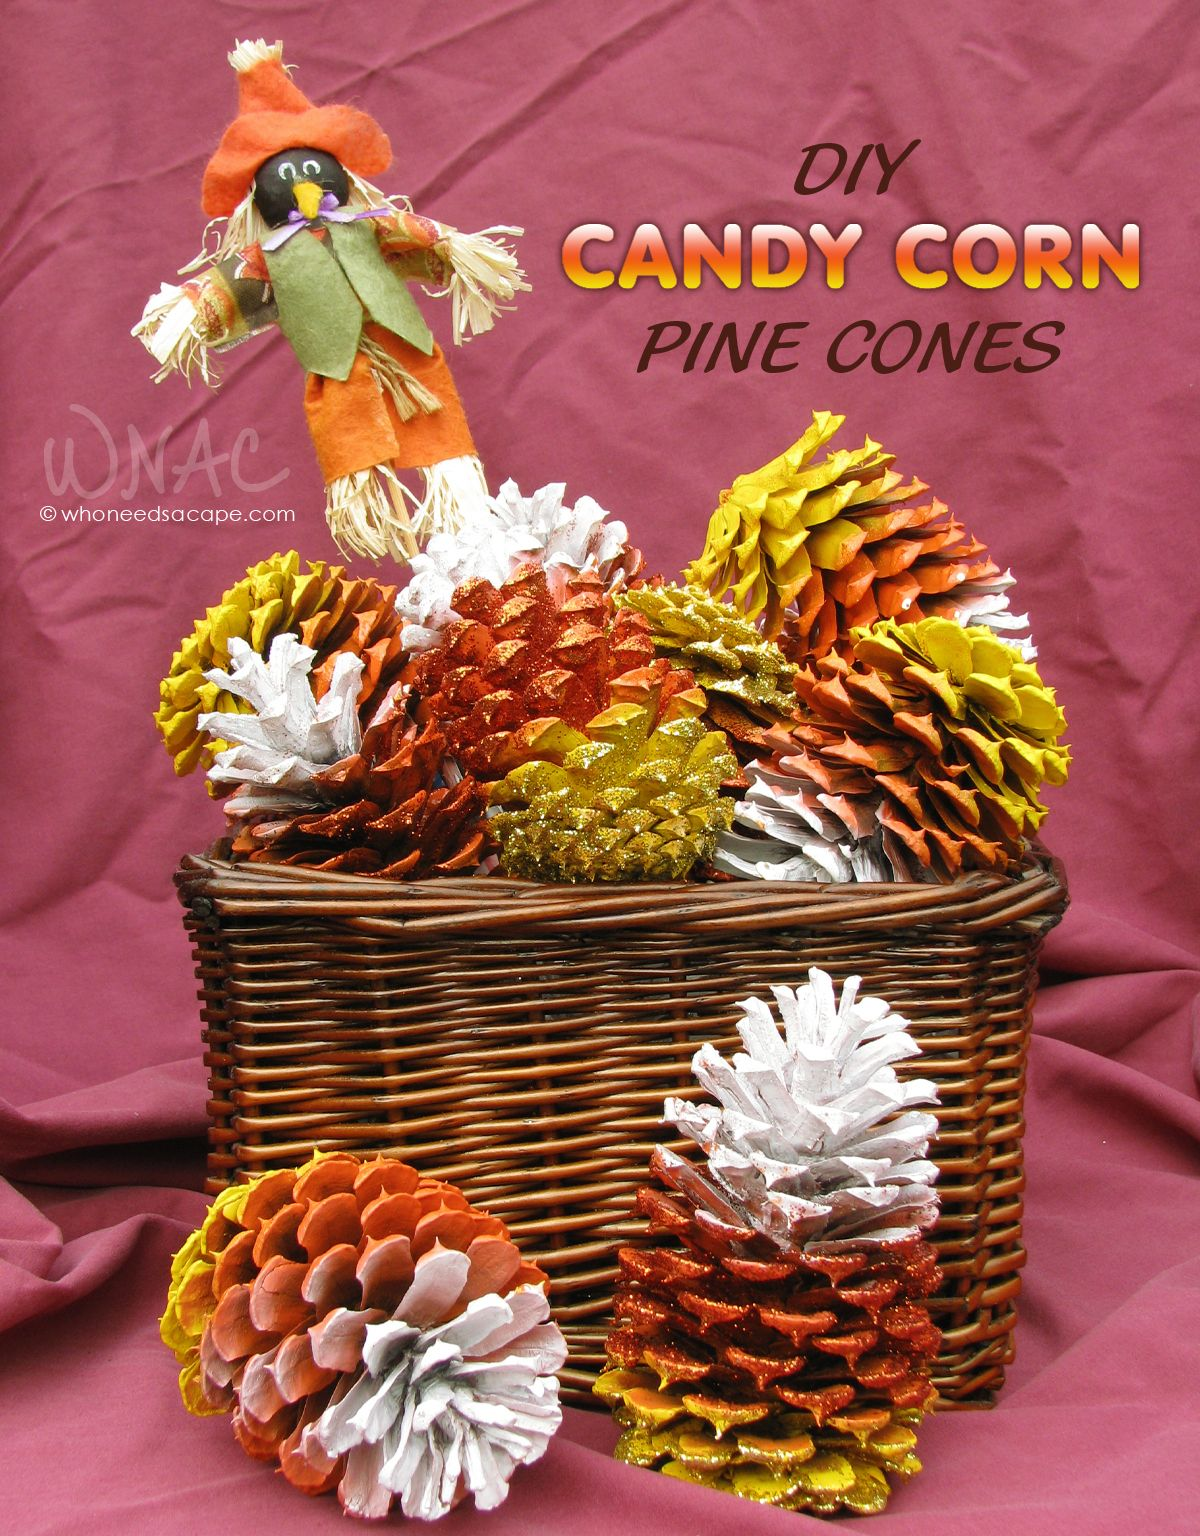 diy candy corn pine cones diy stuff like to try pine. Black Bedroom Furniture Sets. Home Design Ideas